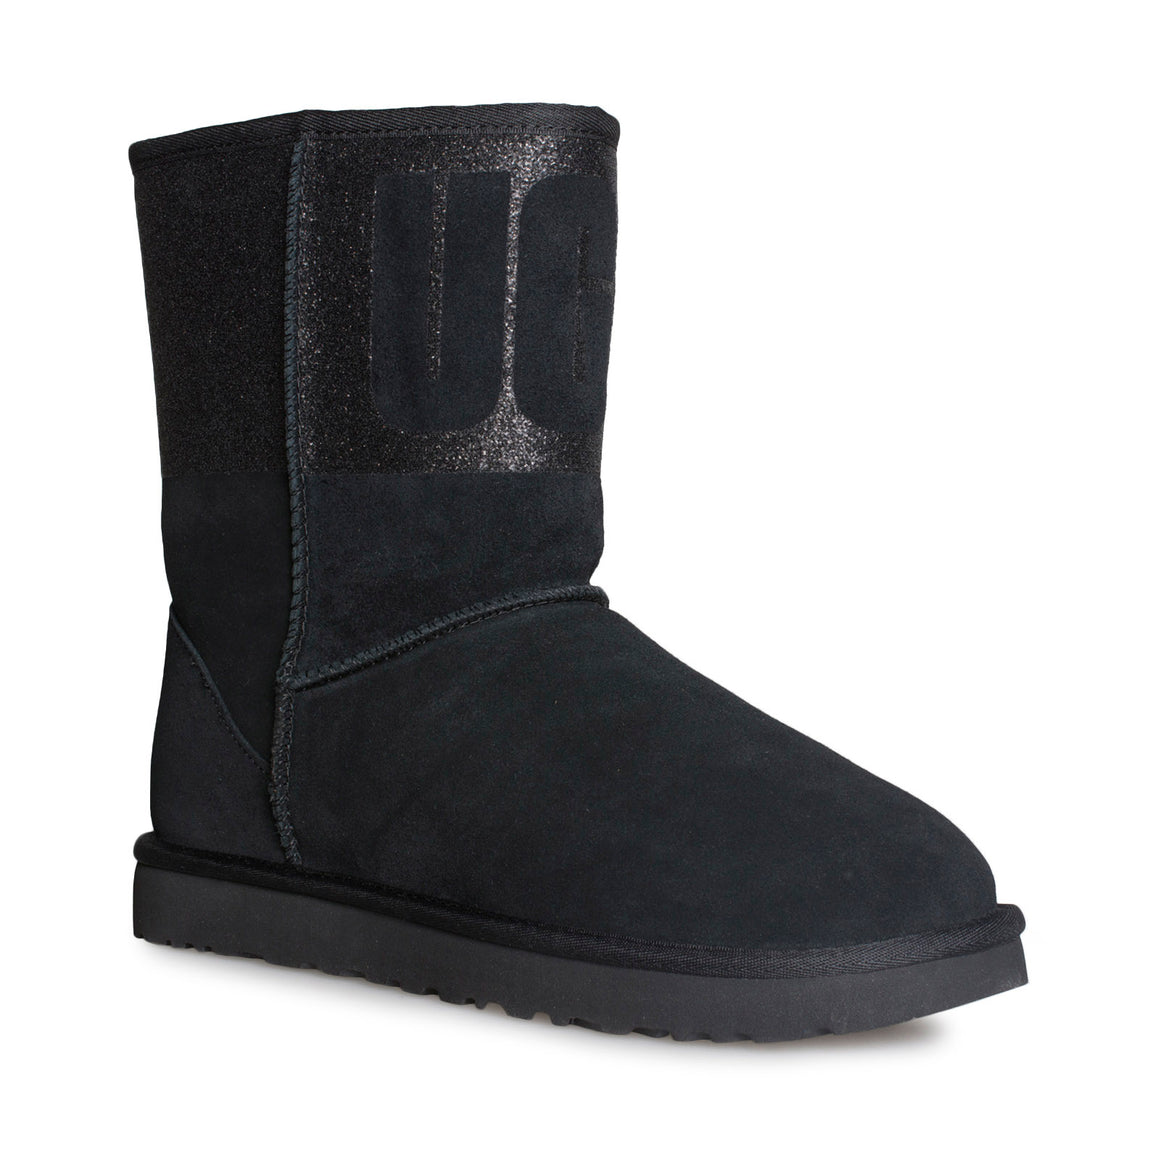 UGG Classic Short UGG Sparkle Black Boots - Women's